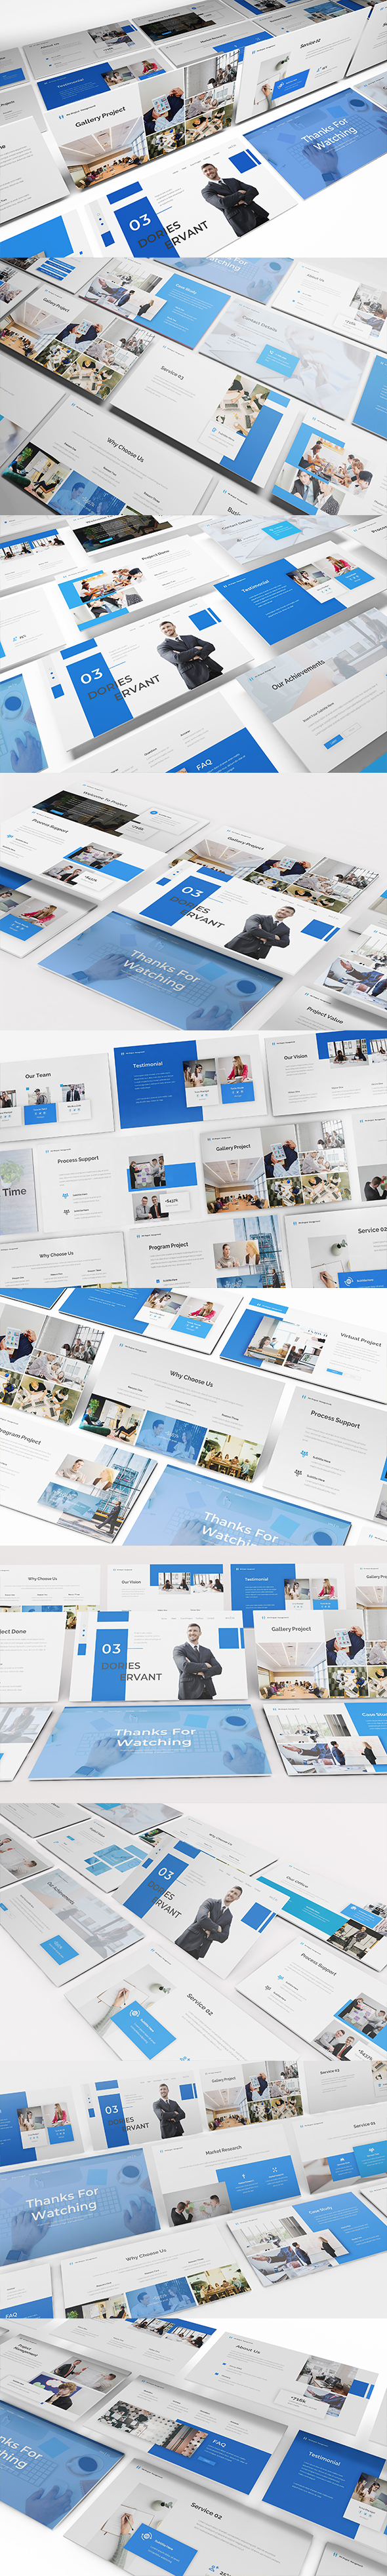 Project Management Keynote Template